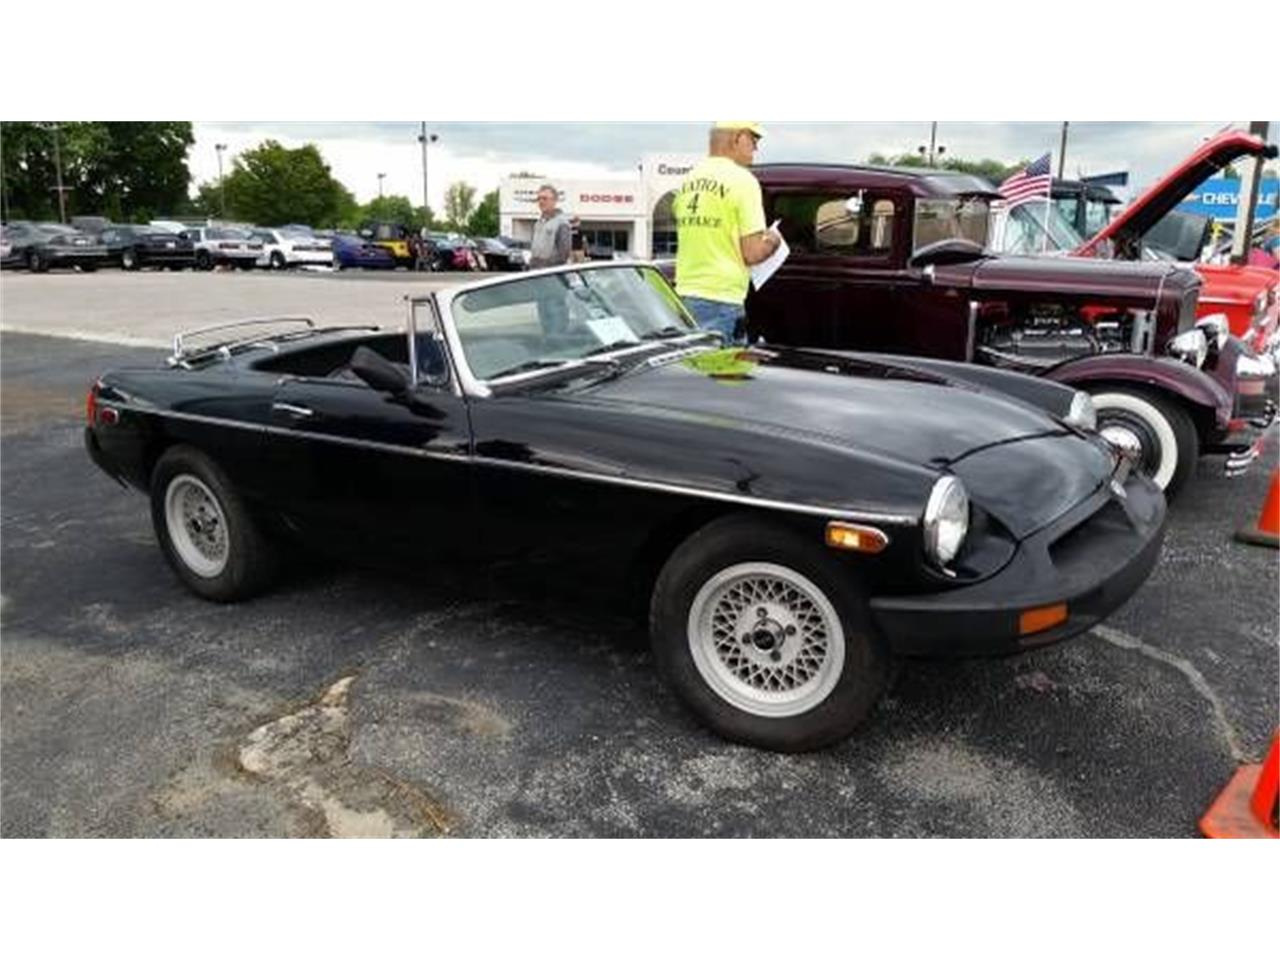 For Sale: 1975 MG MGB in Cadillac, Michigan